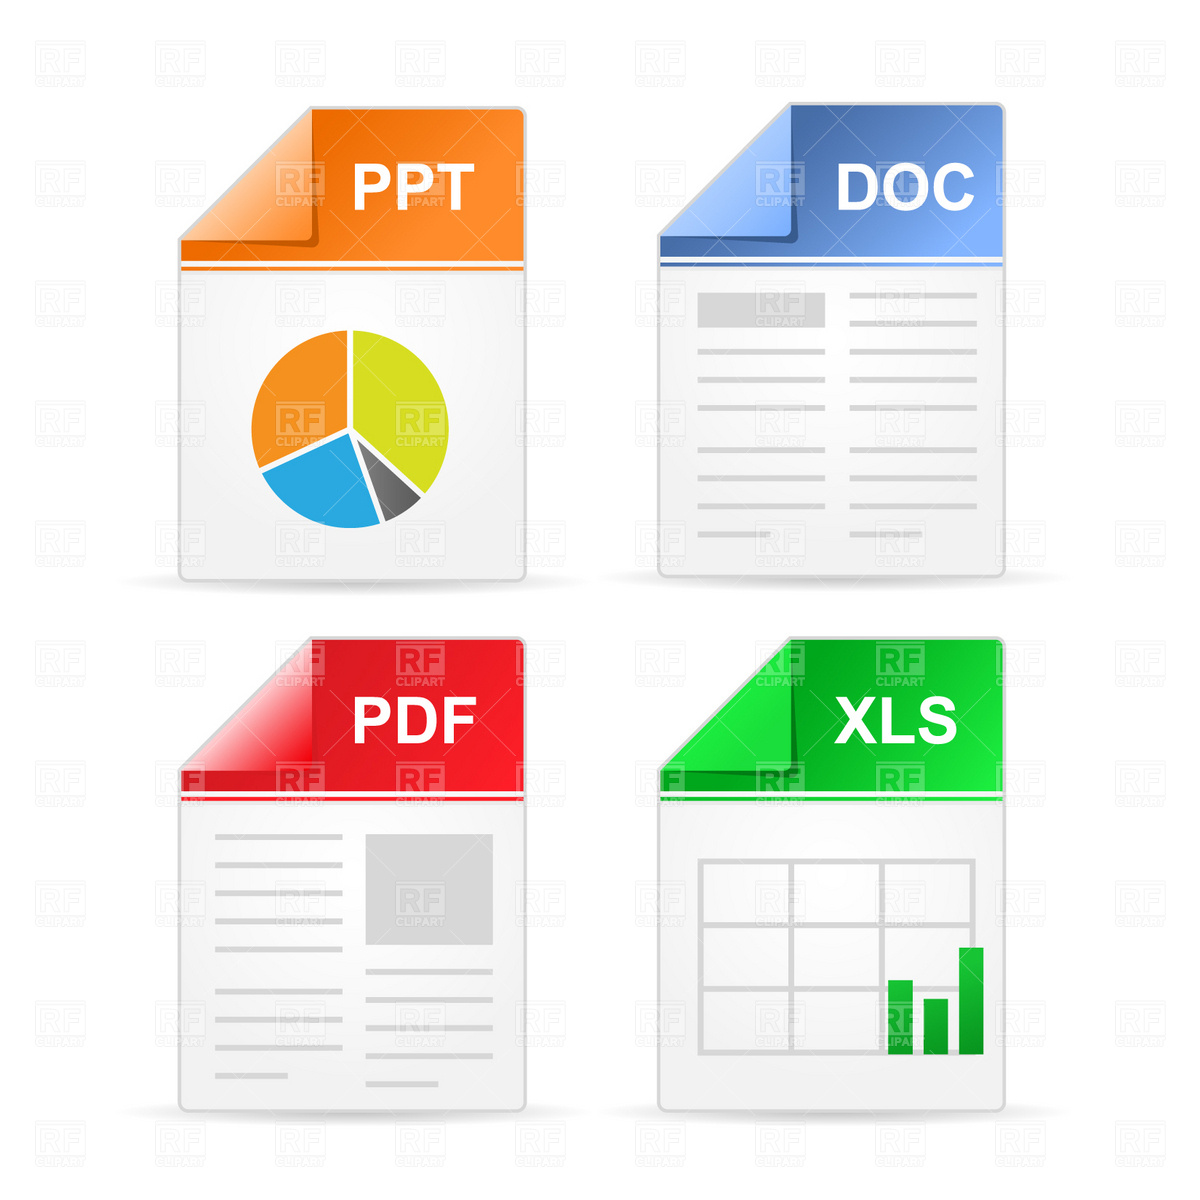 Filetype Icons   Ppt, Doc, Pdf, Xls, 1657, Icons And Emblems, Download  image #509